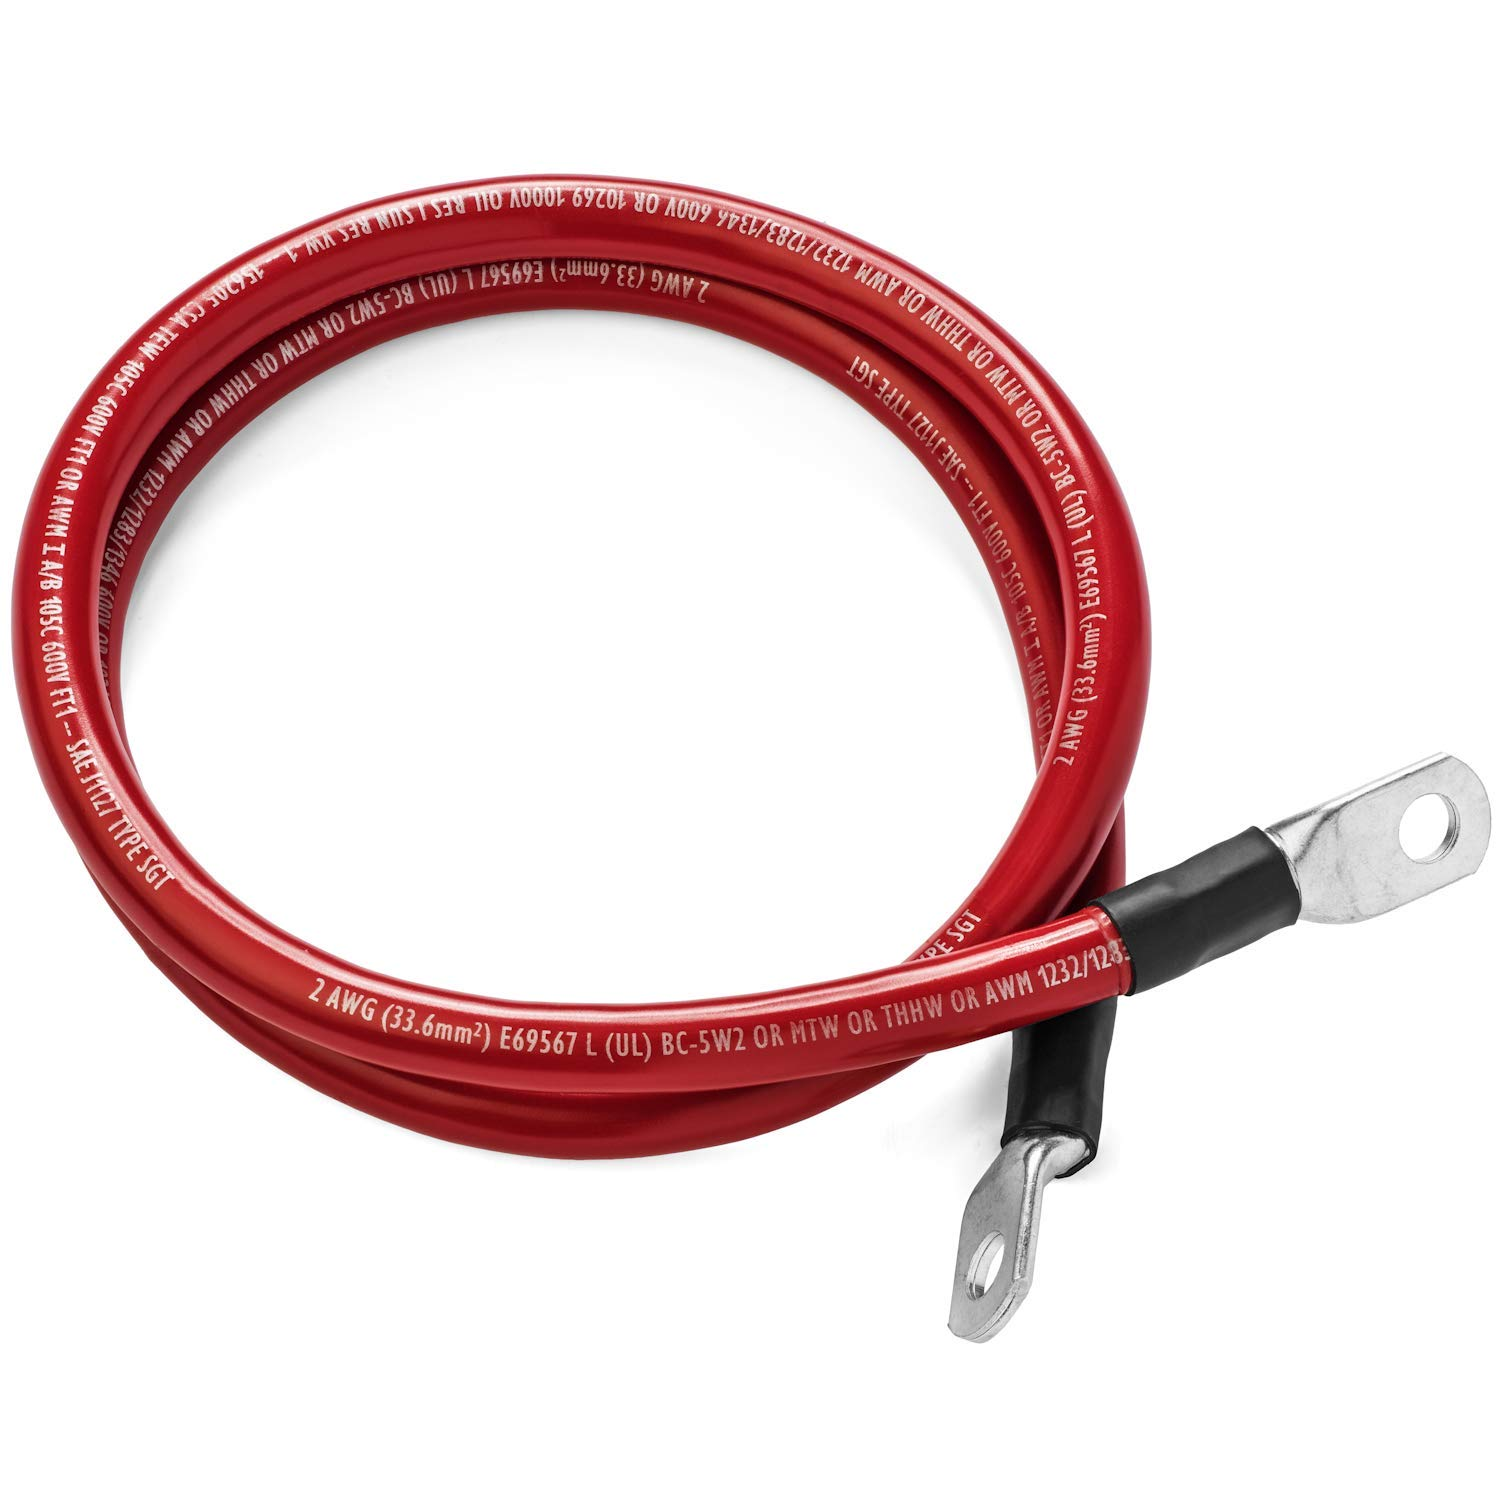 Red 20 Foot 0 Gauge 1/0 AWG Battery Cable by Spartan Power, Positive Only (20 FT 3/8'' Ring Terminals) by Spartan Power